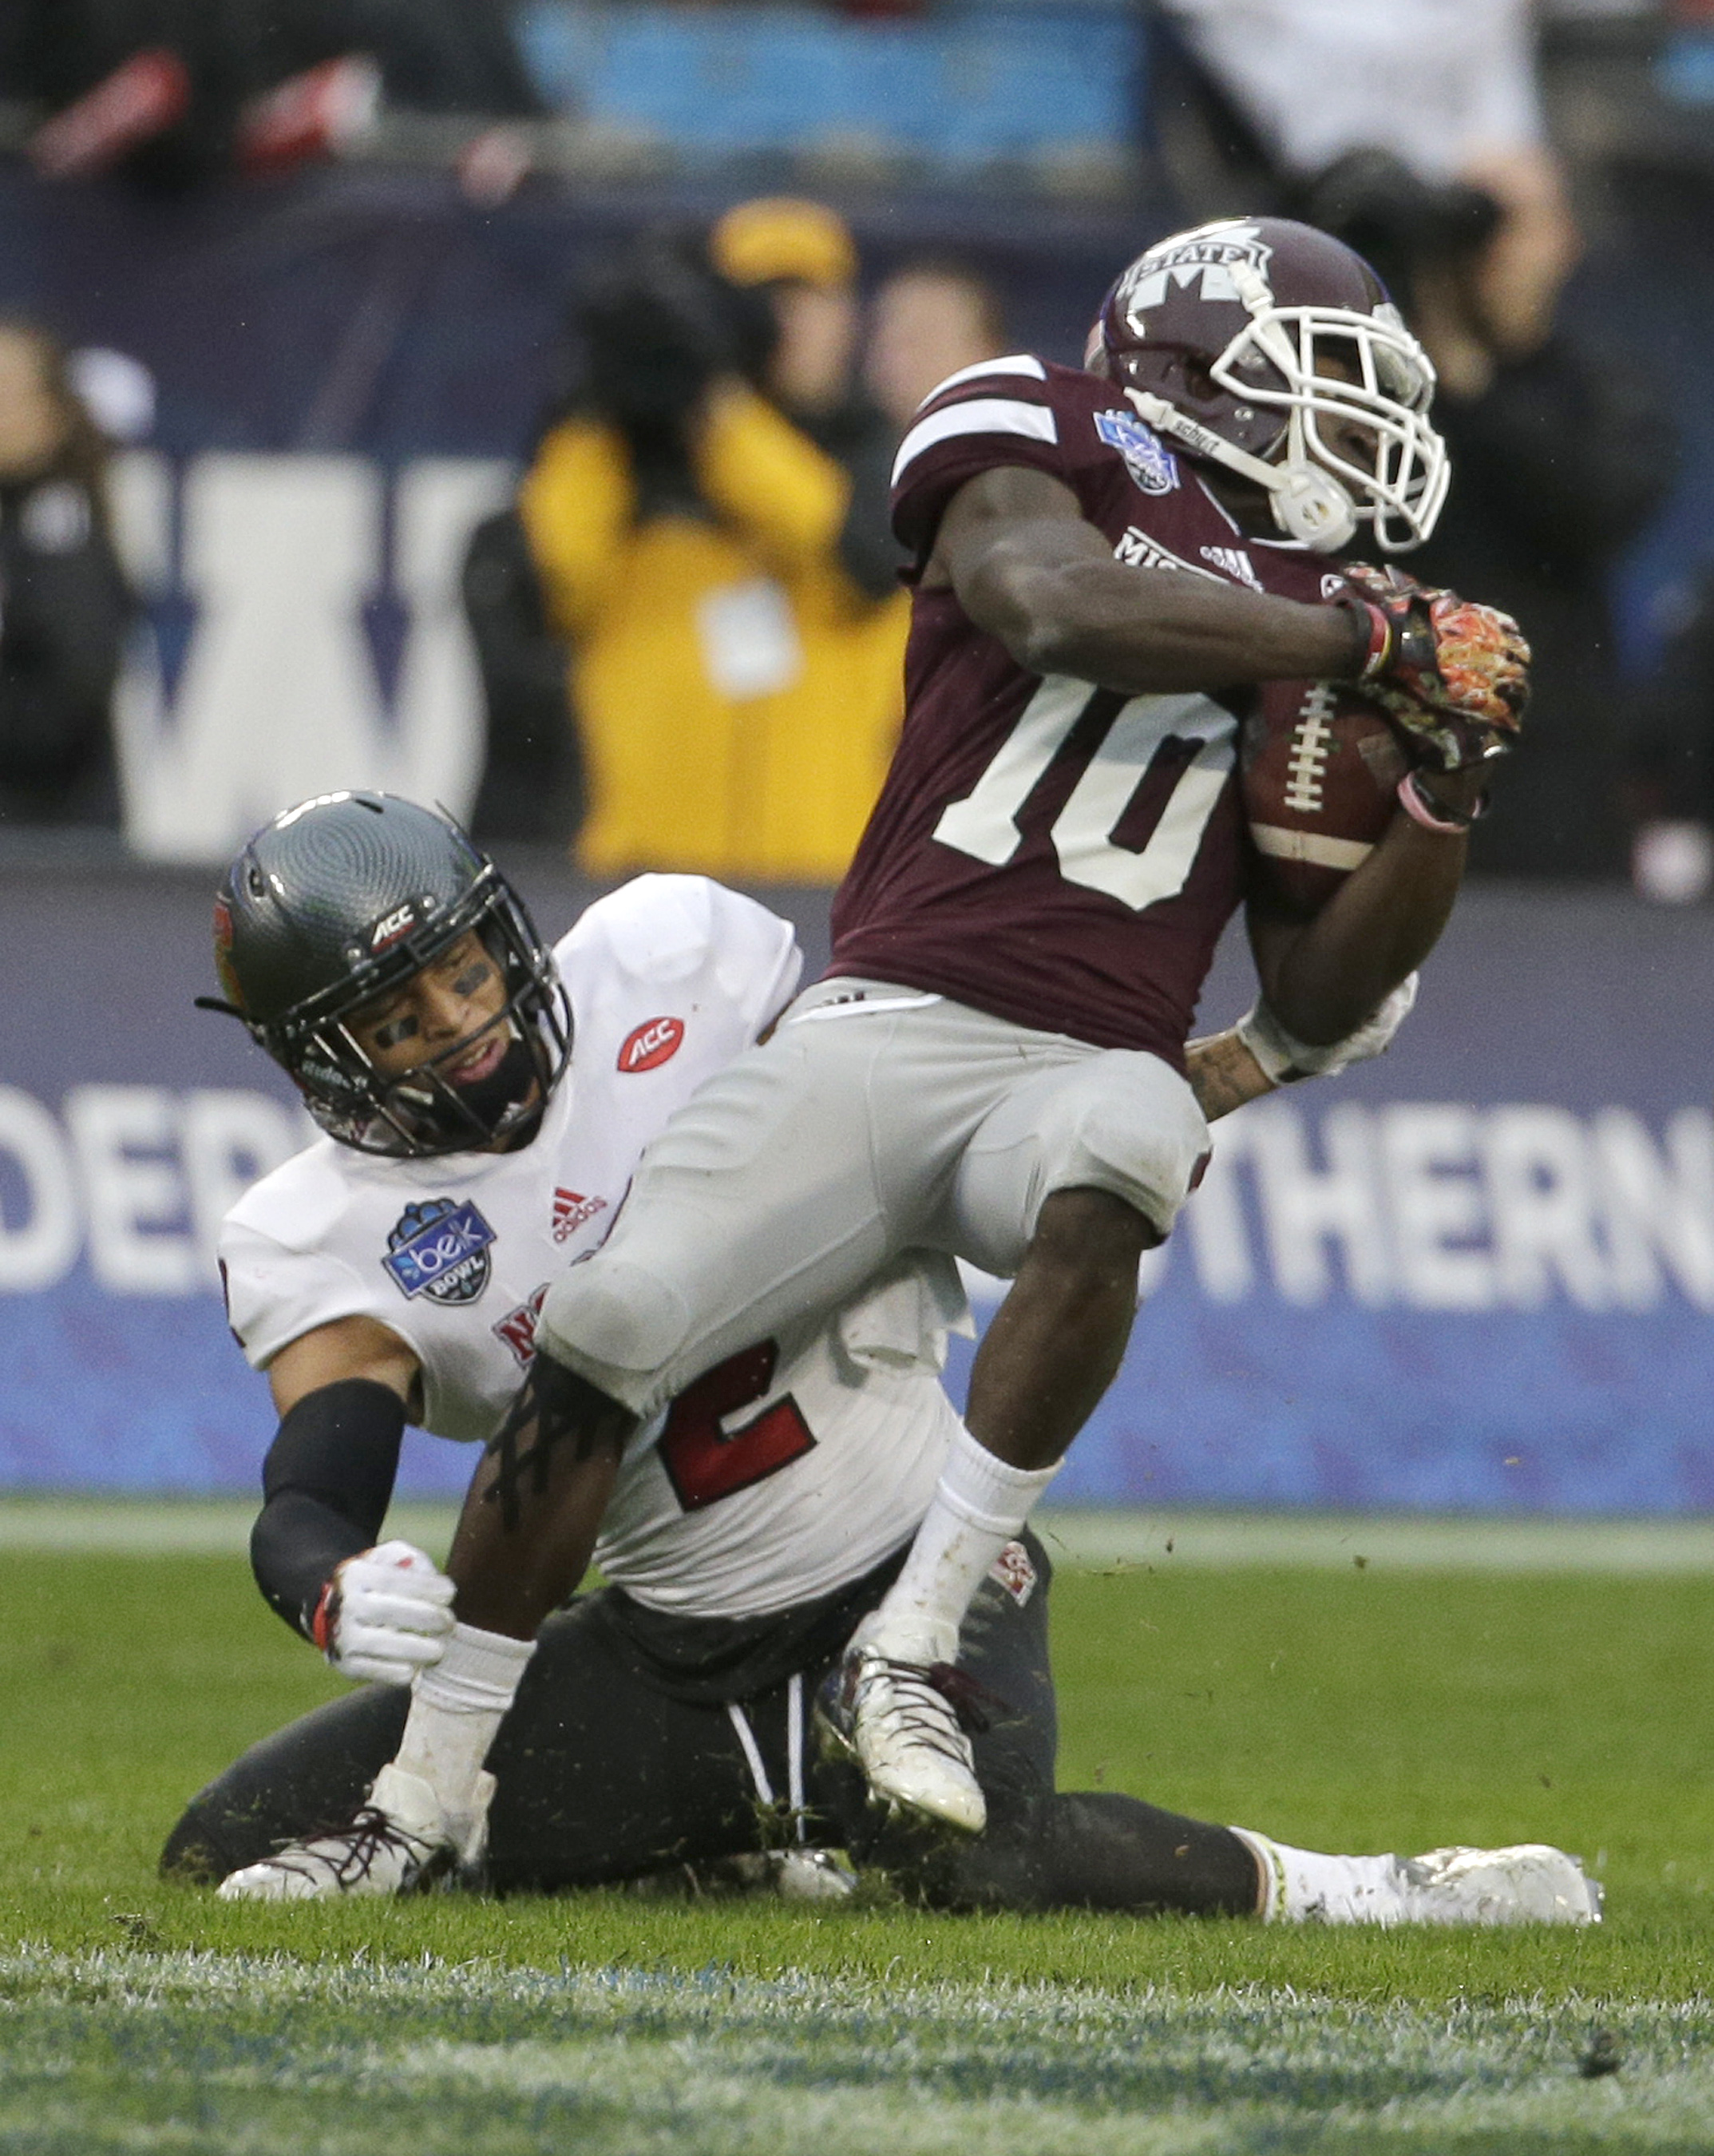 Mississippi State running back Brandon Holloway (10) catches a pass as North Carolina State safety Josh Jones (2) defends in the first half of the Belk Bowl NCAA college football game in Charlotte, N.C., Wednesday, Dec. 30, 2015. (AP Photo/Chuck Burton)